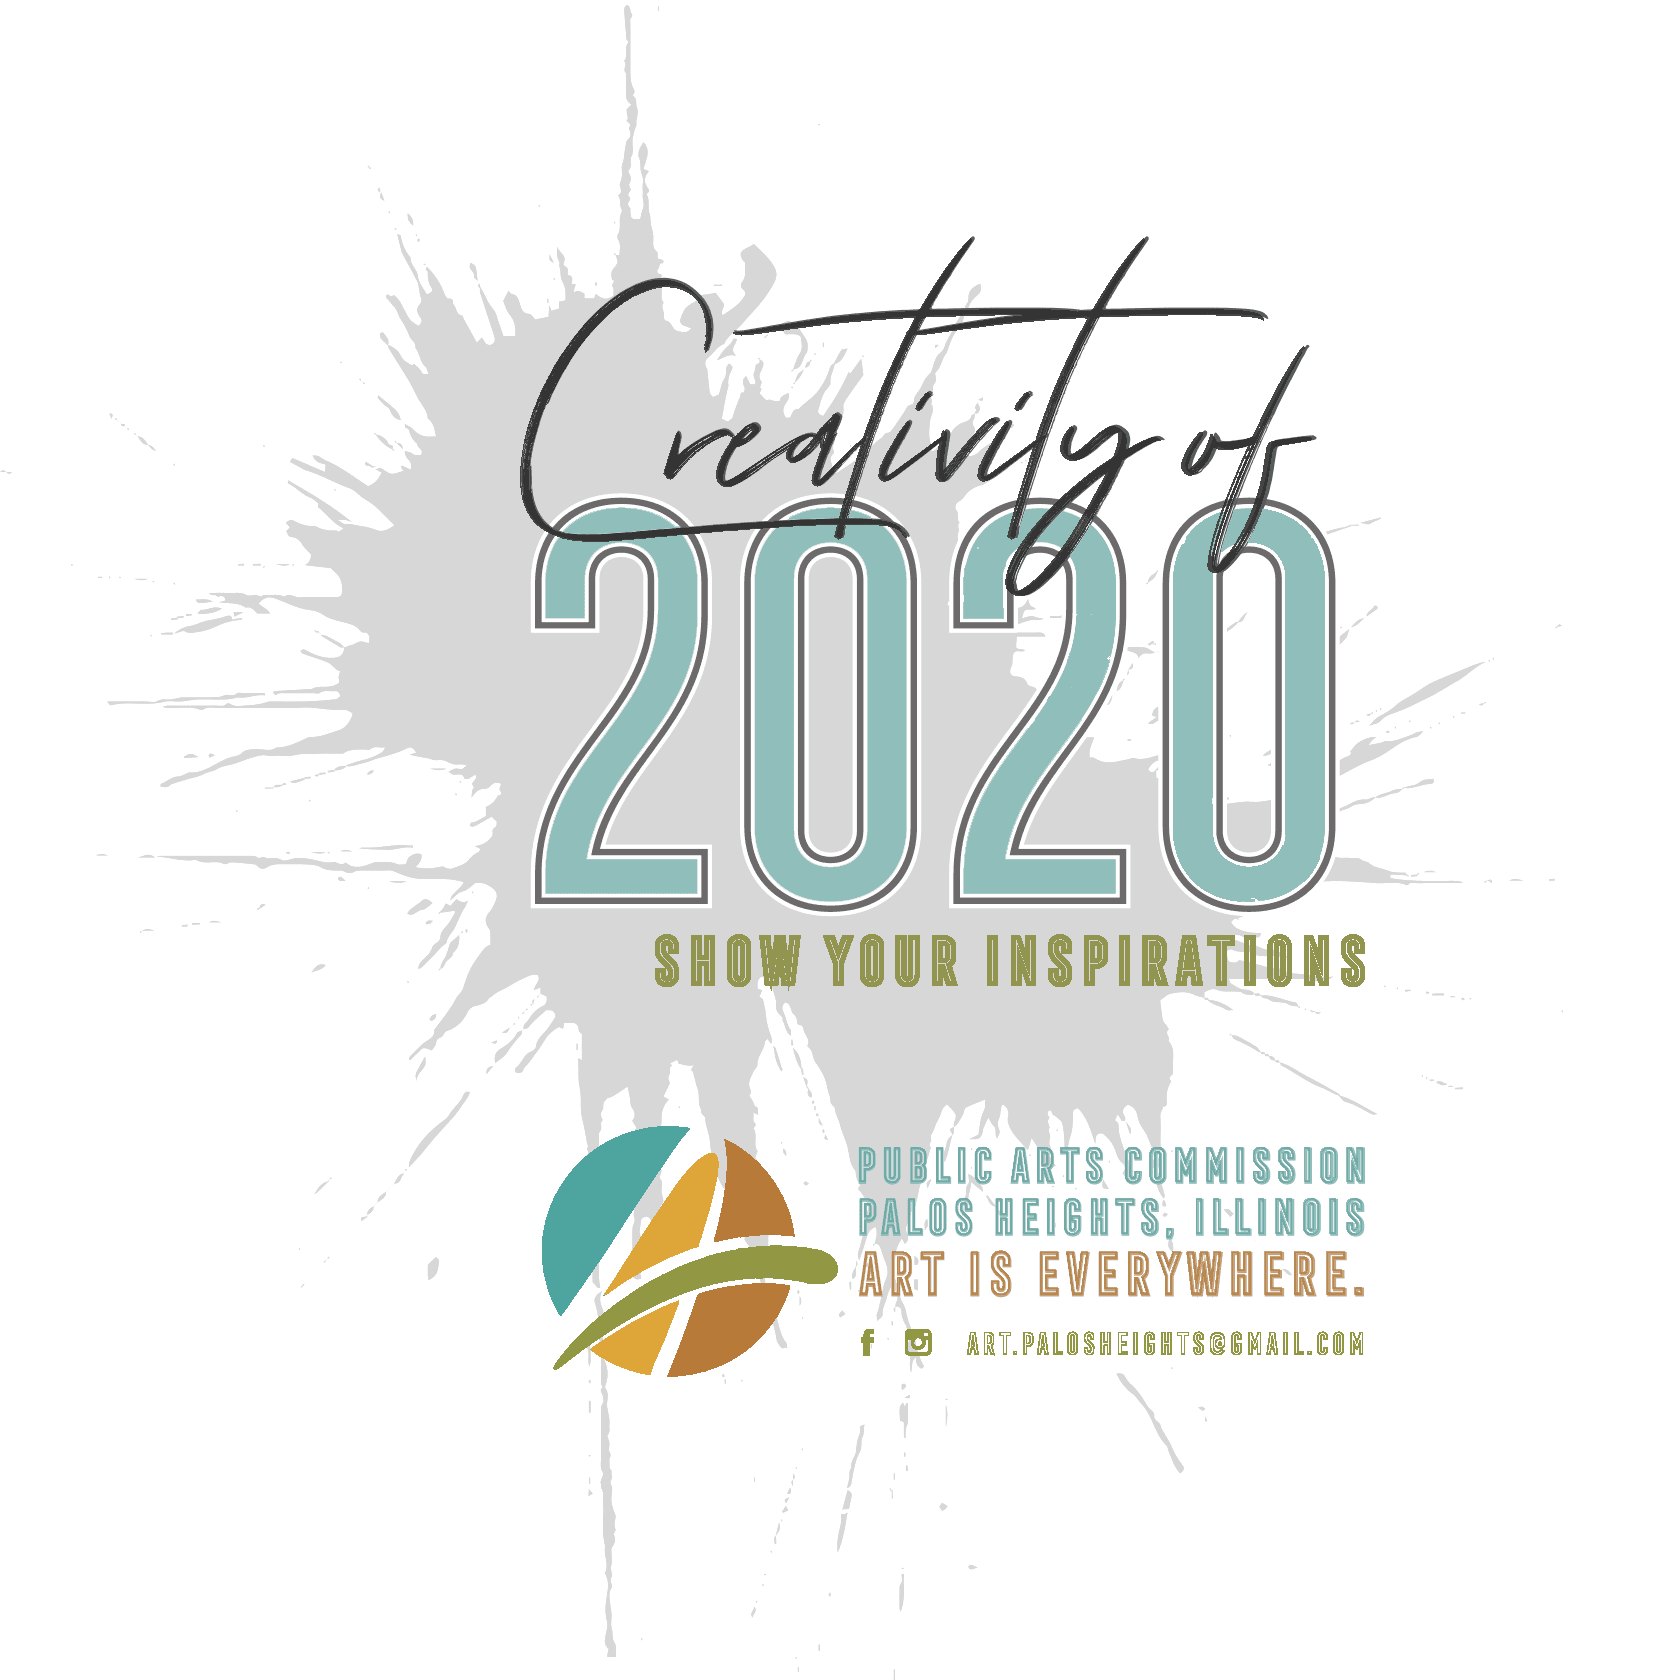 PAC 2020_Creativity Together_Page_2 Opens in new window